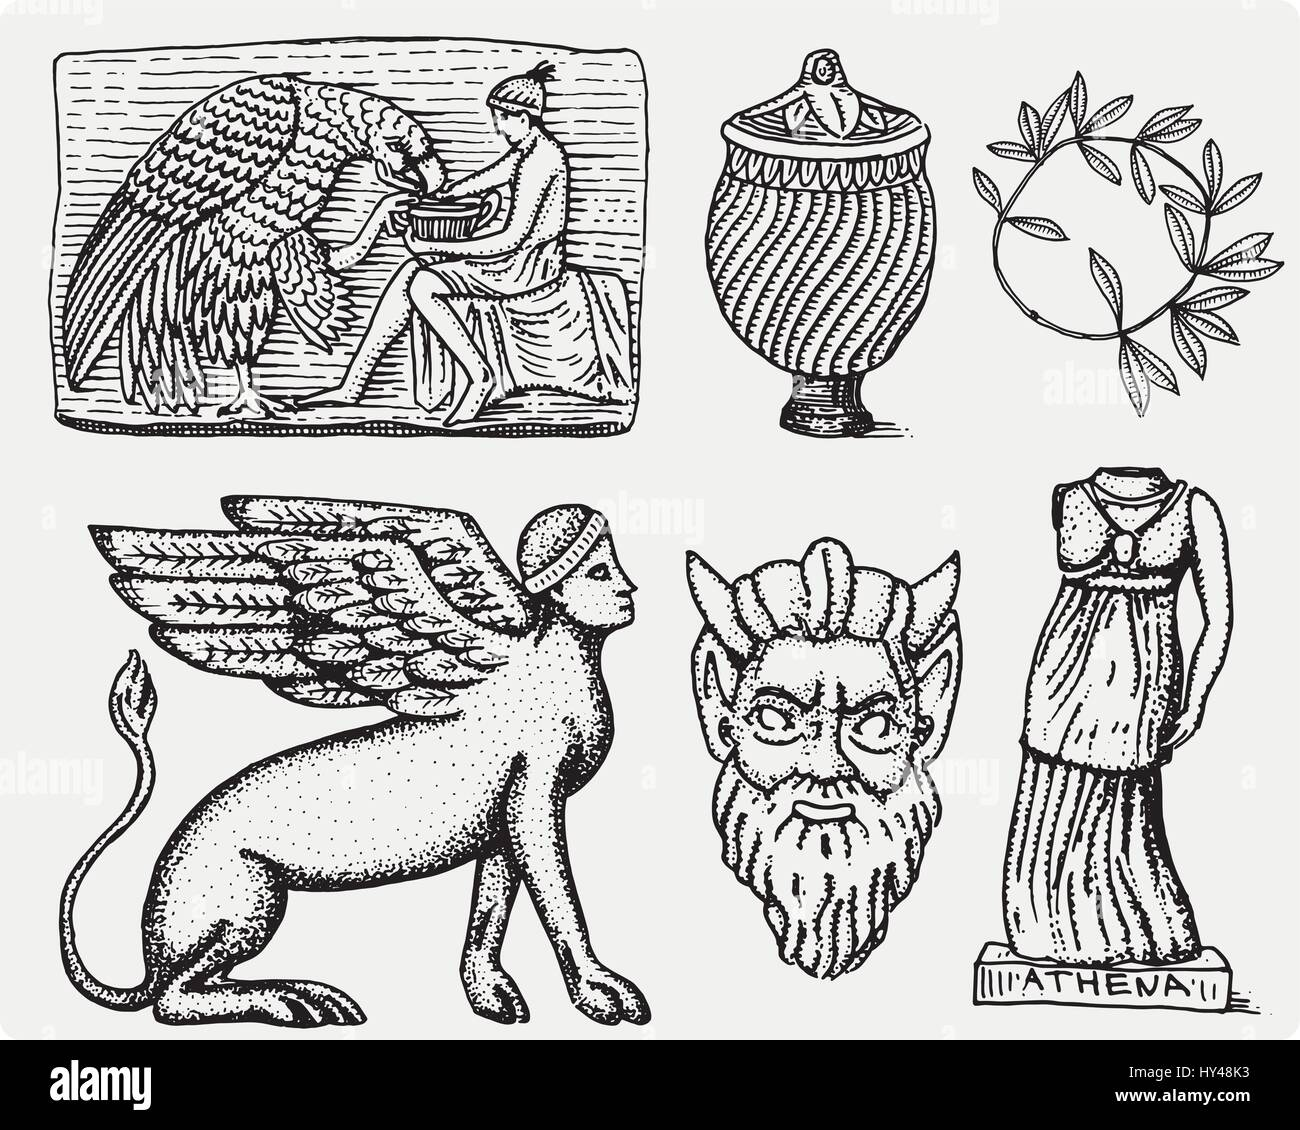 Ancient greece antique symbols ganymede and eagle anphora vase ancient greece antique symbols ganymede and eagle anphora vase athena statue and satyr biocorpaavc